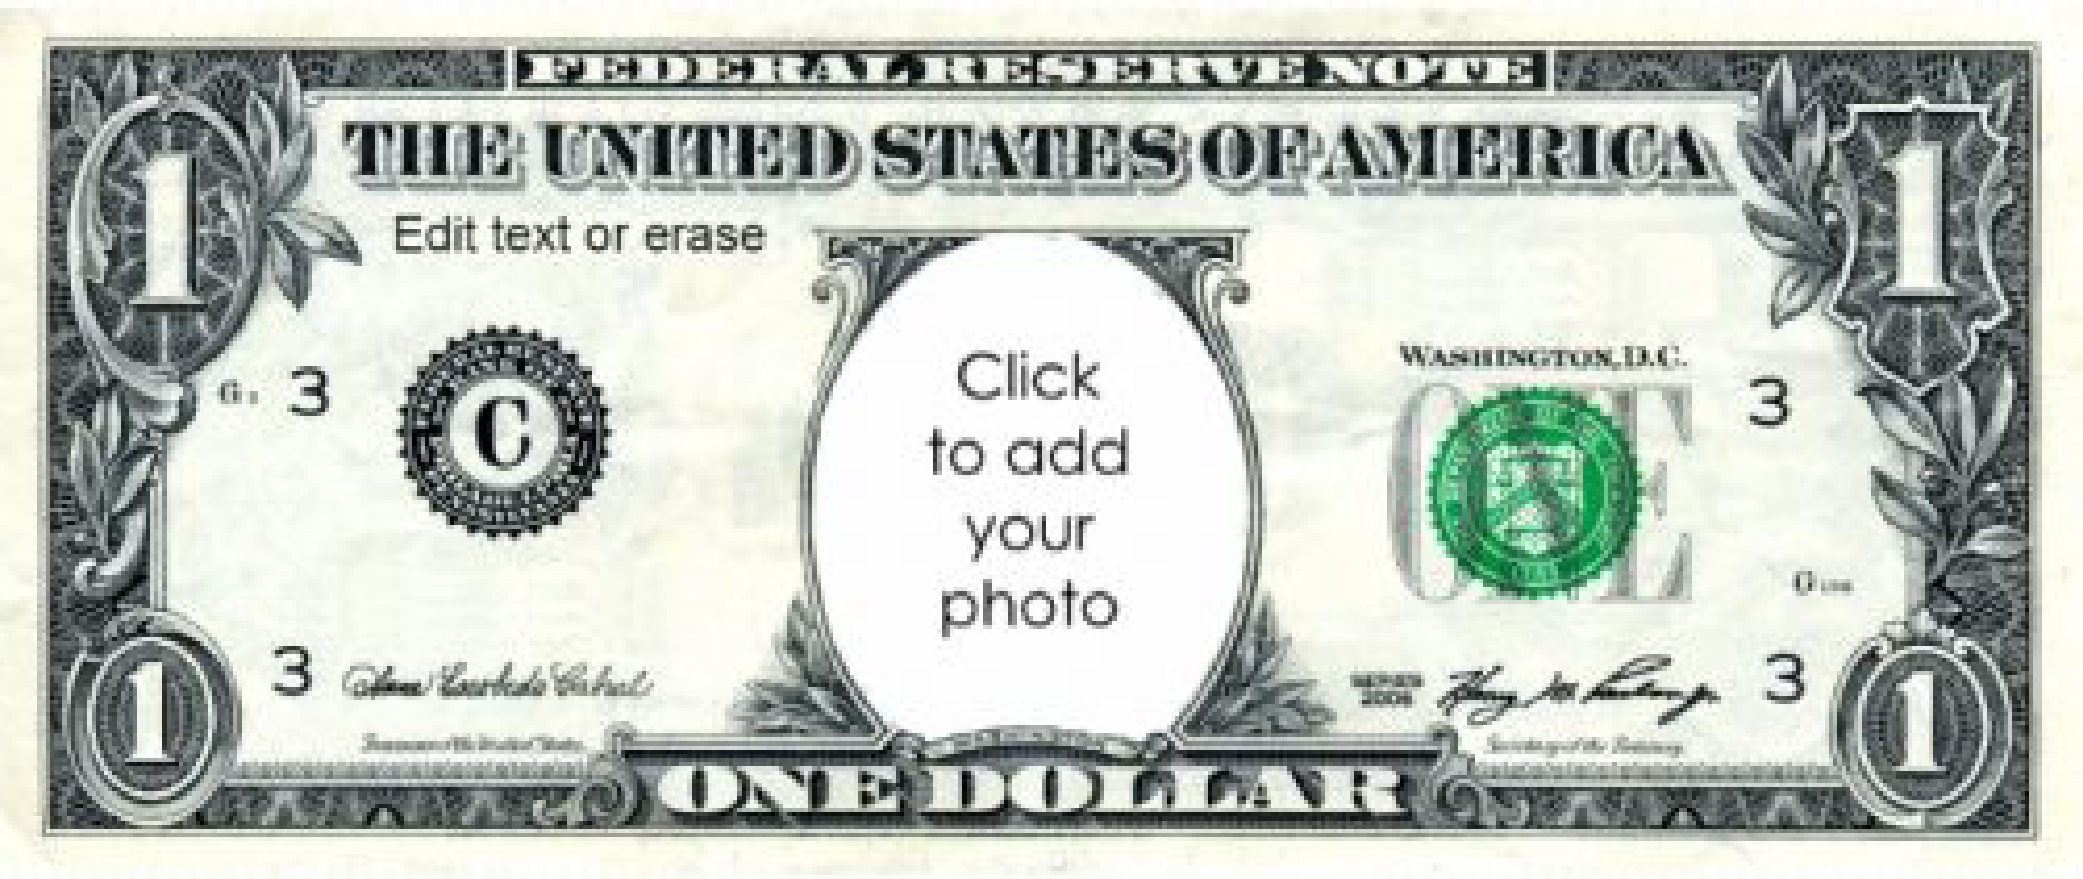 Play Money 1 Dollar Do You Want To Make Play Money With Your Own Photo Looking For Play Money With S Printable Play Money Money Template Play Money Template